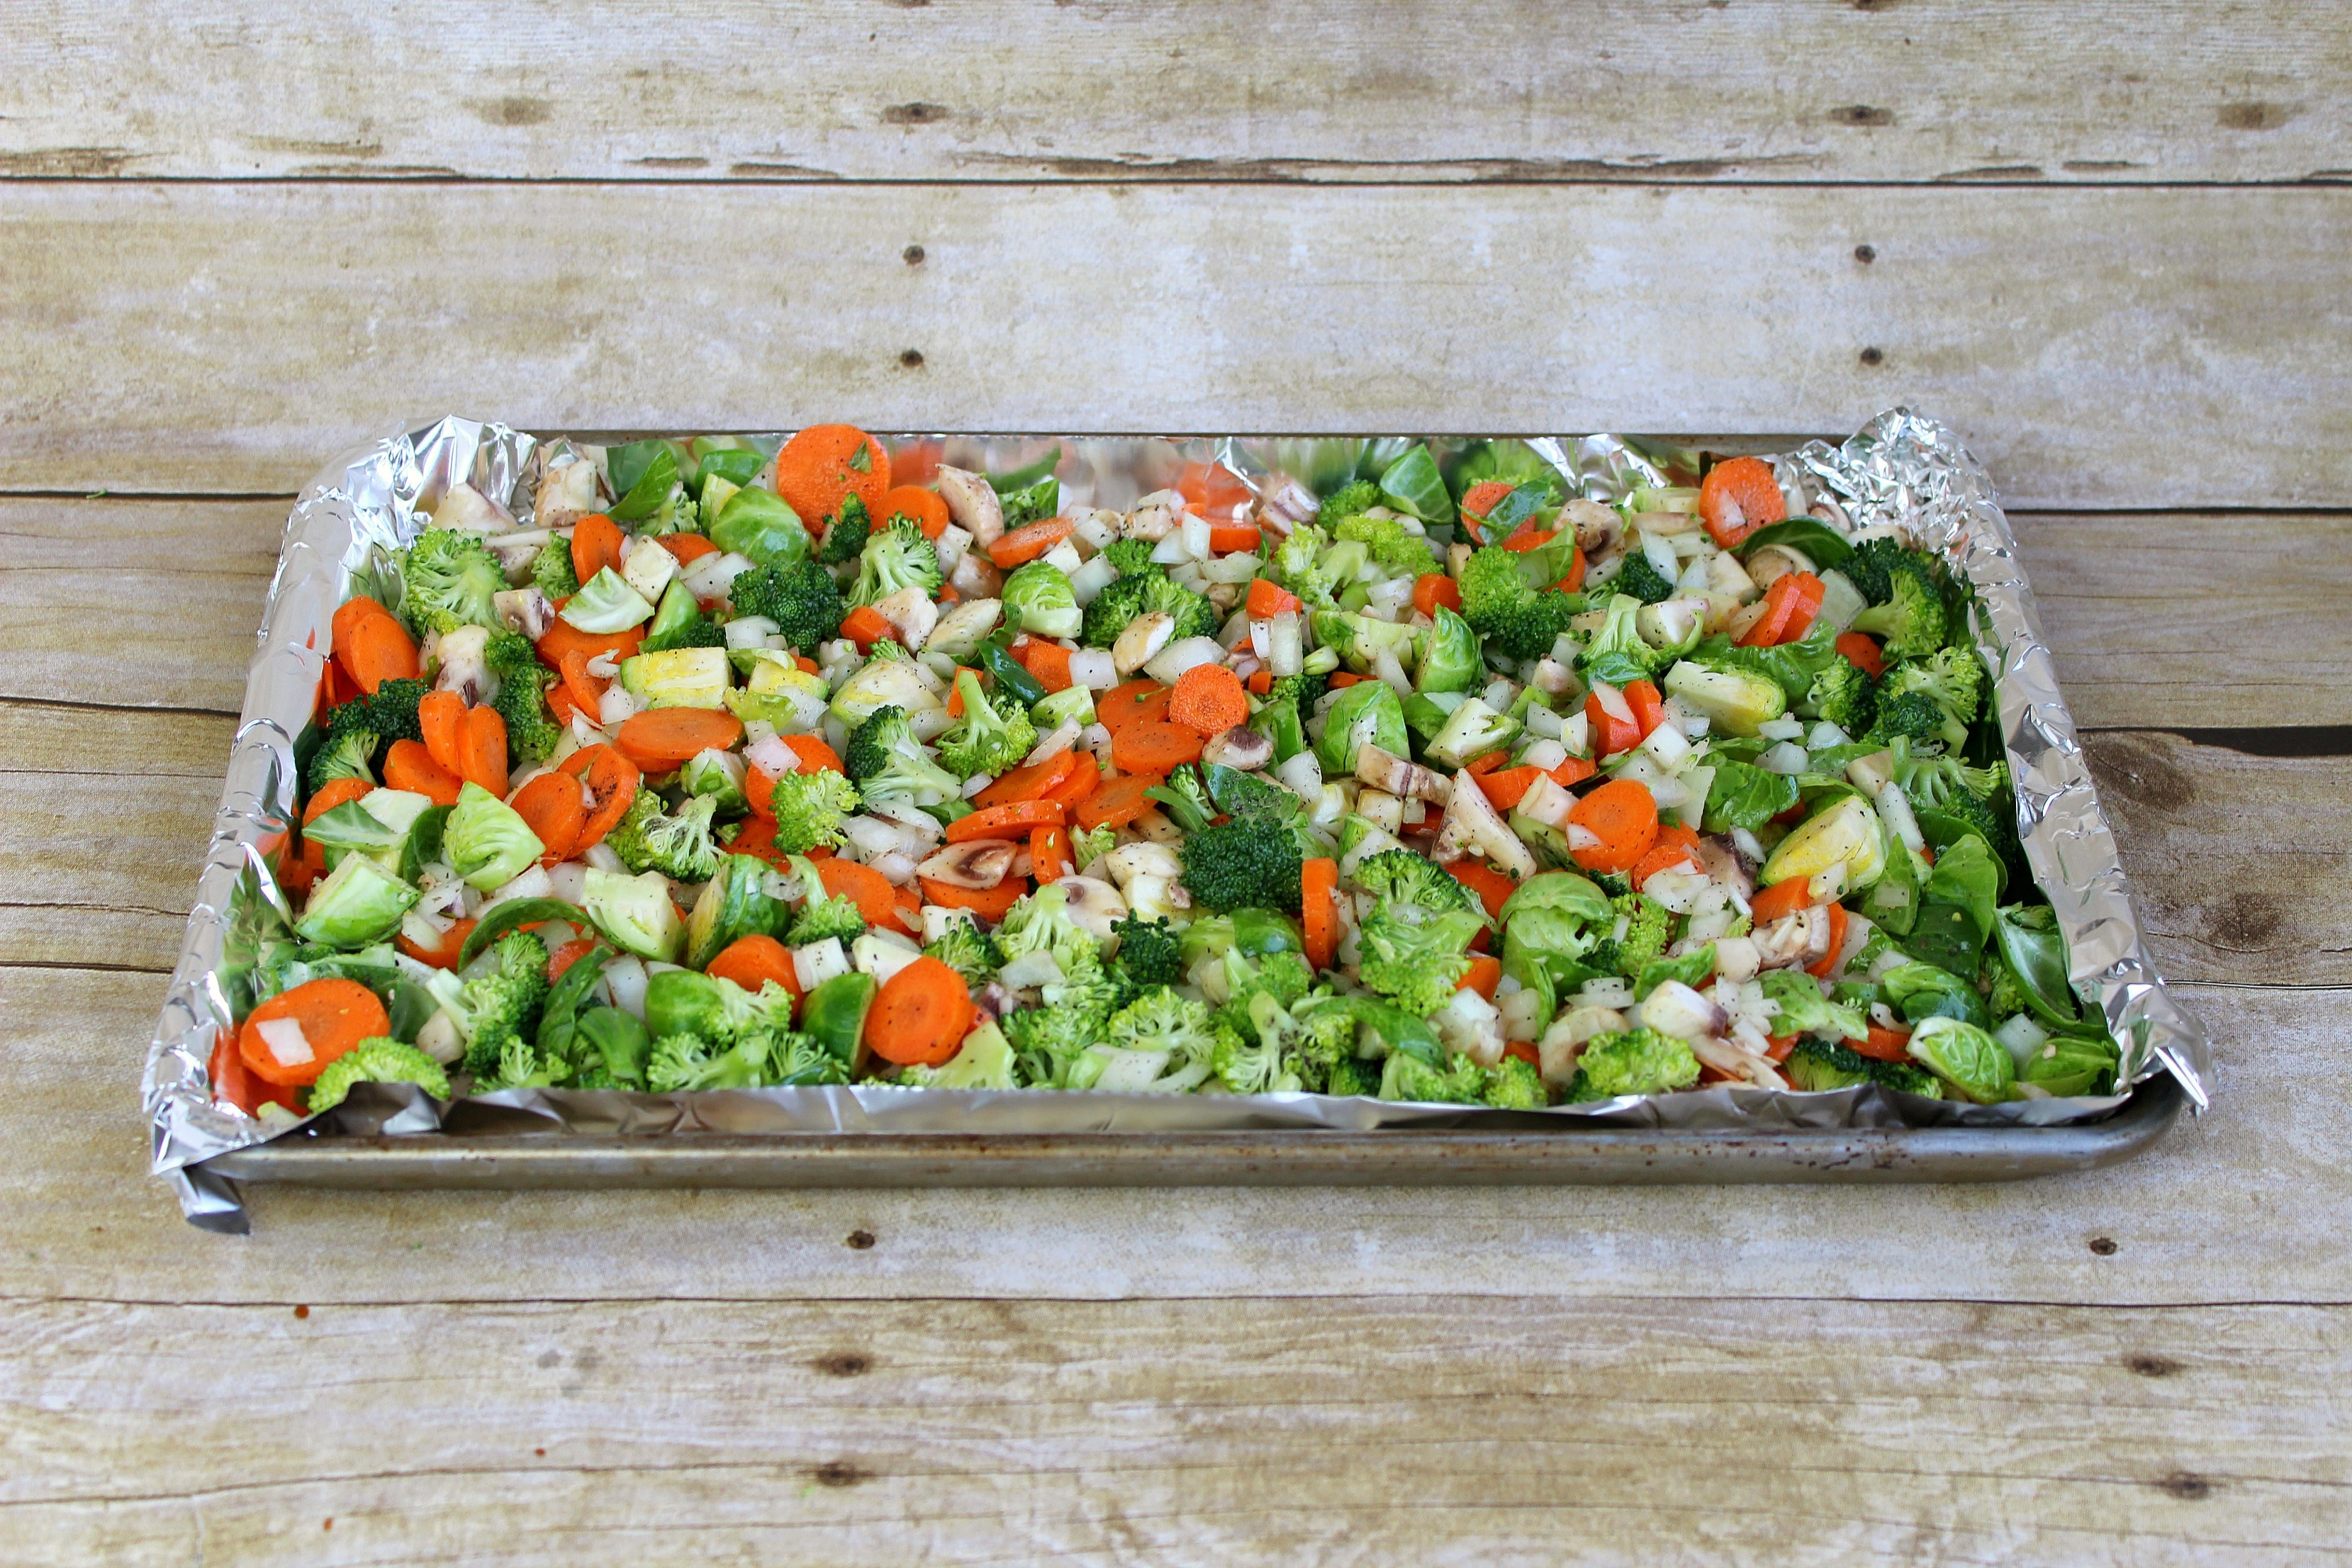 Spread the veggies out on a baking pan before roasting